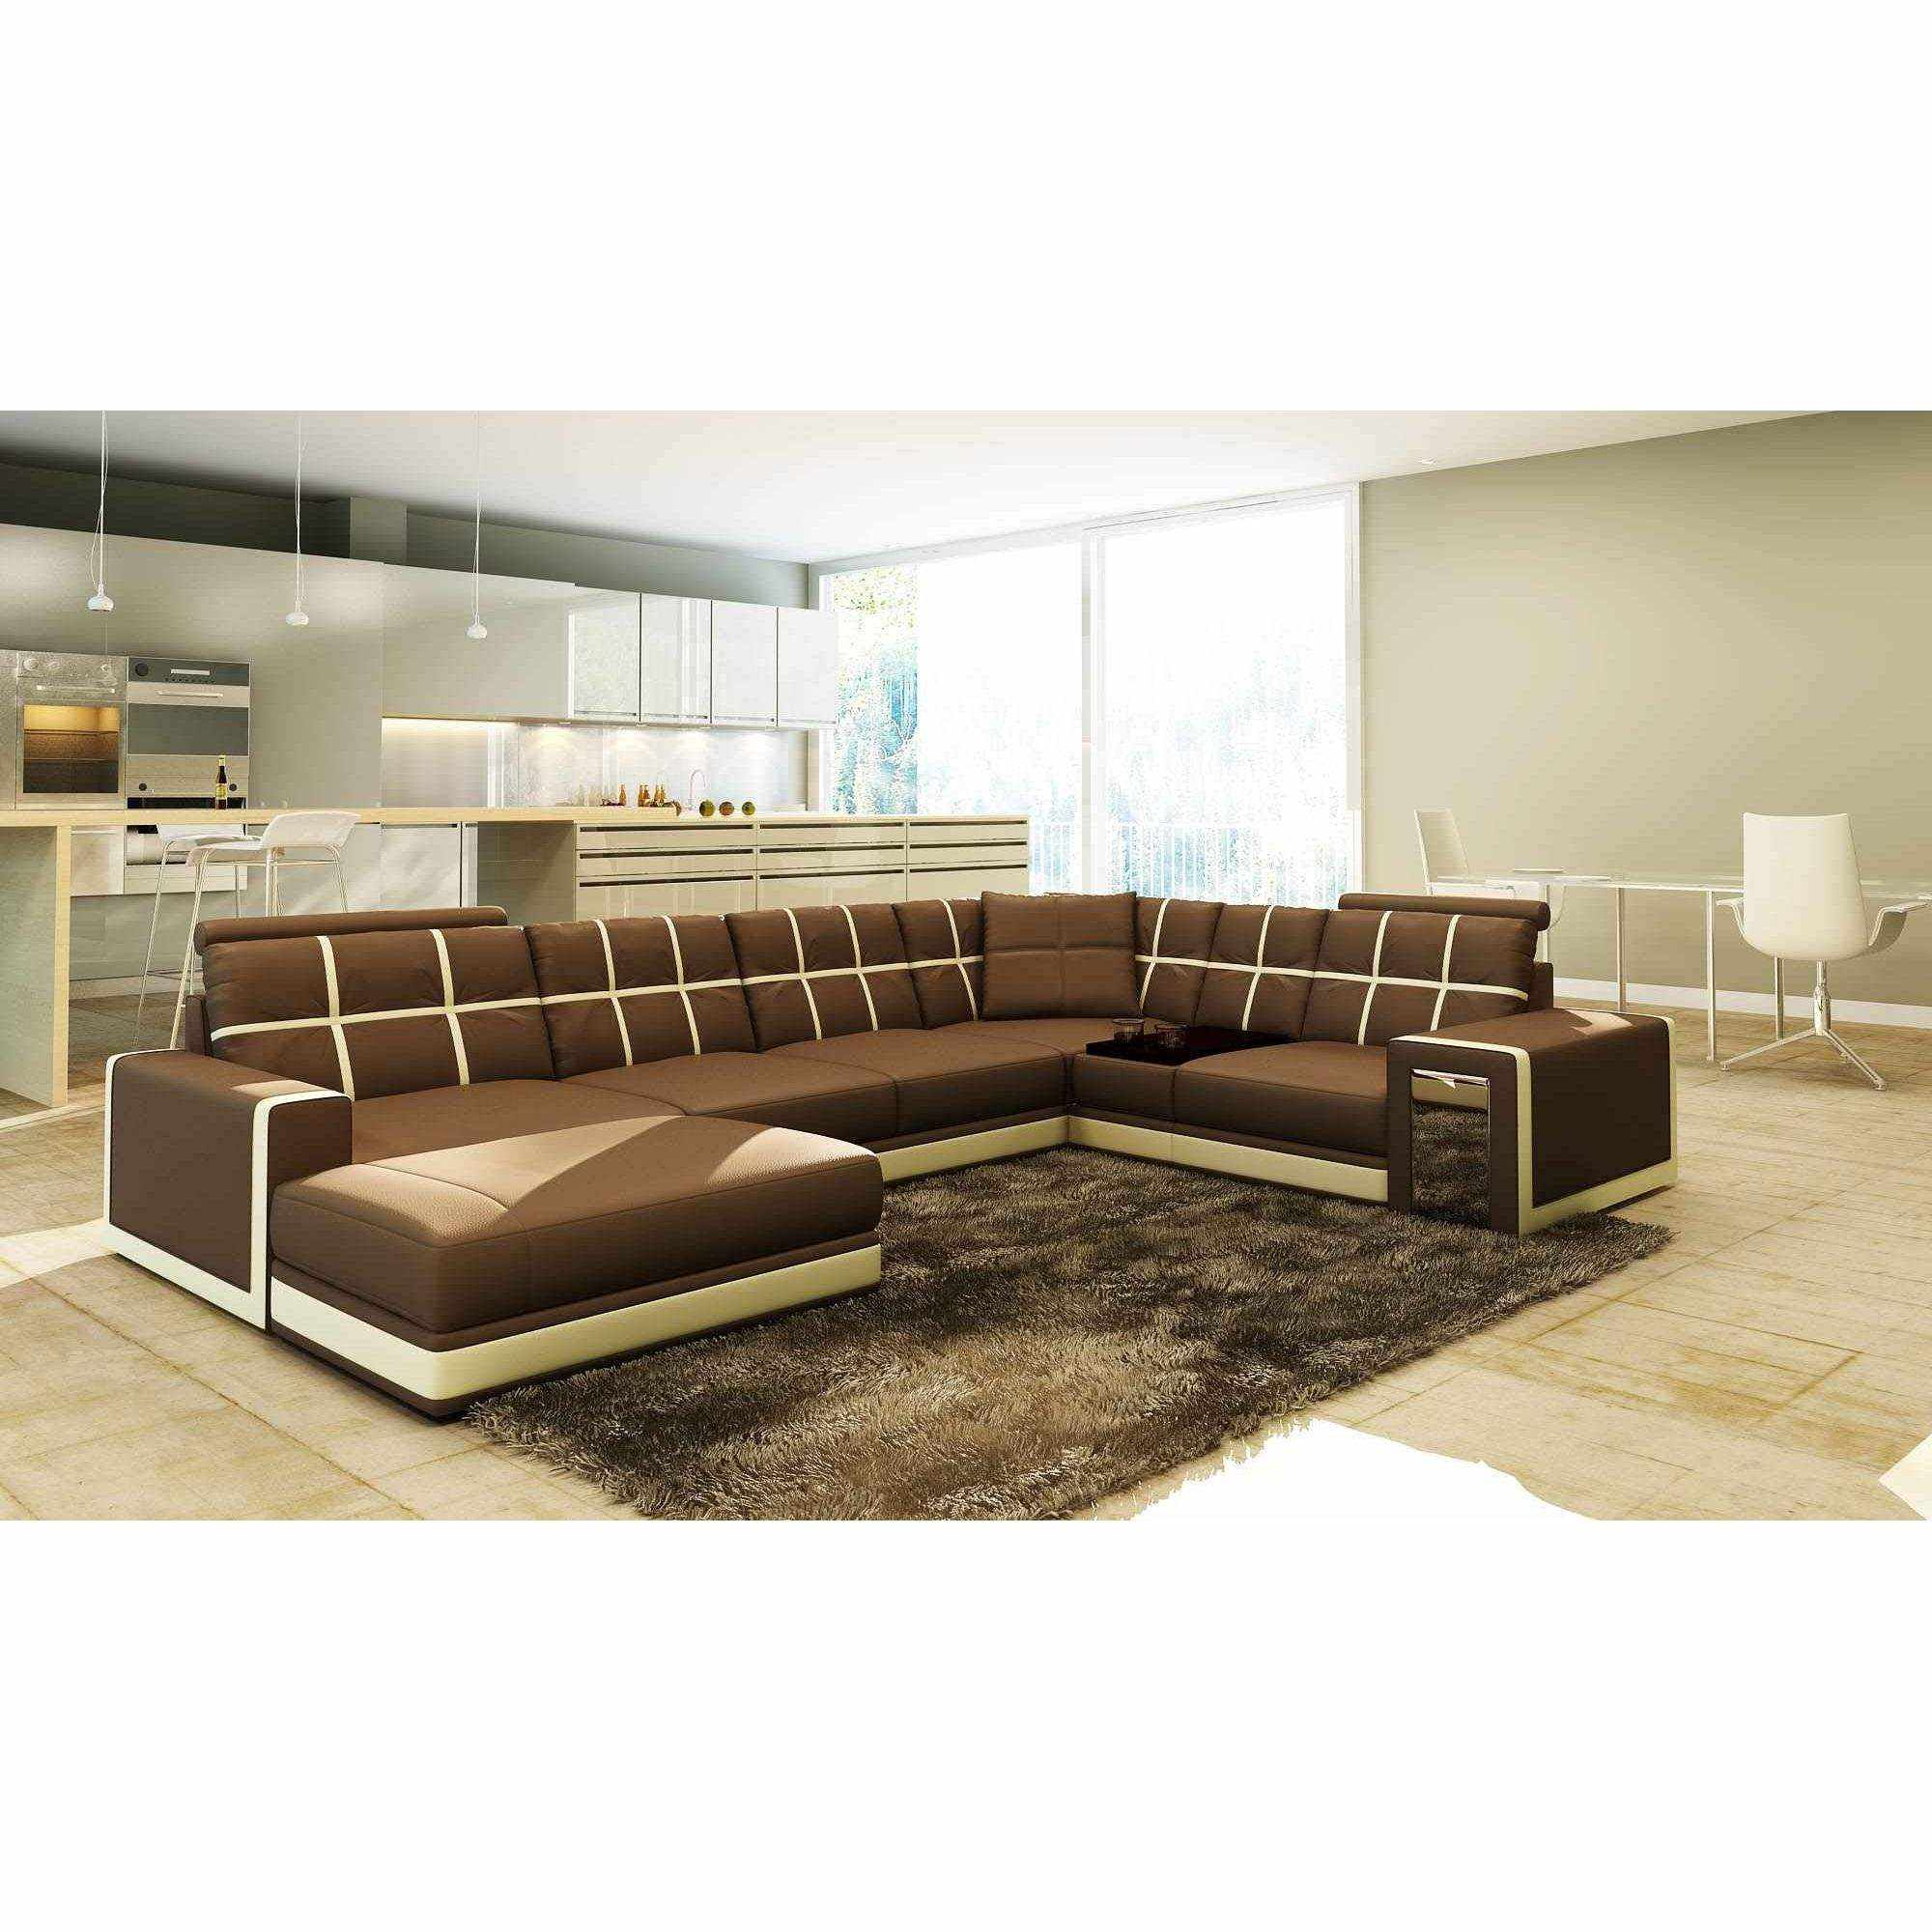 Deco in paris canape d angle panoramique cuir marron et beige design electr - Canape panoramique design ...